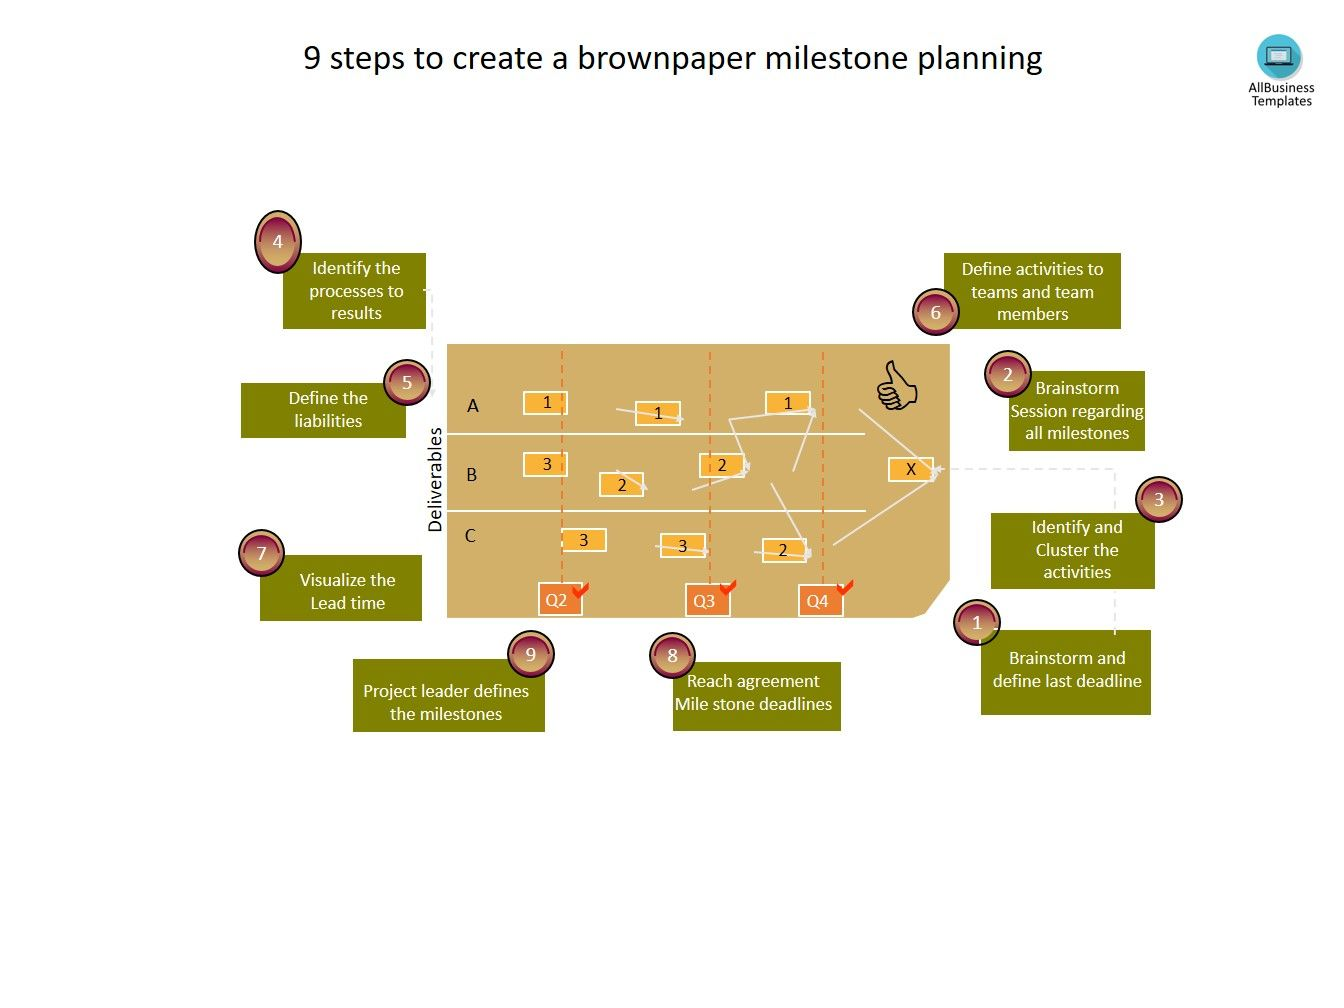 A3 Brown Paper Milestone Planning Have you ever worked